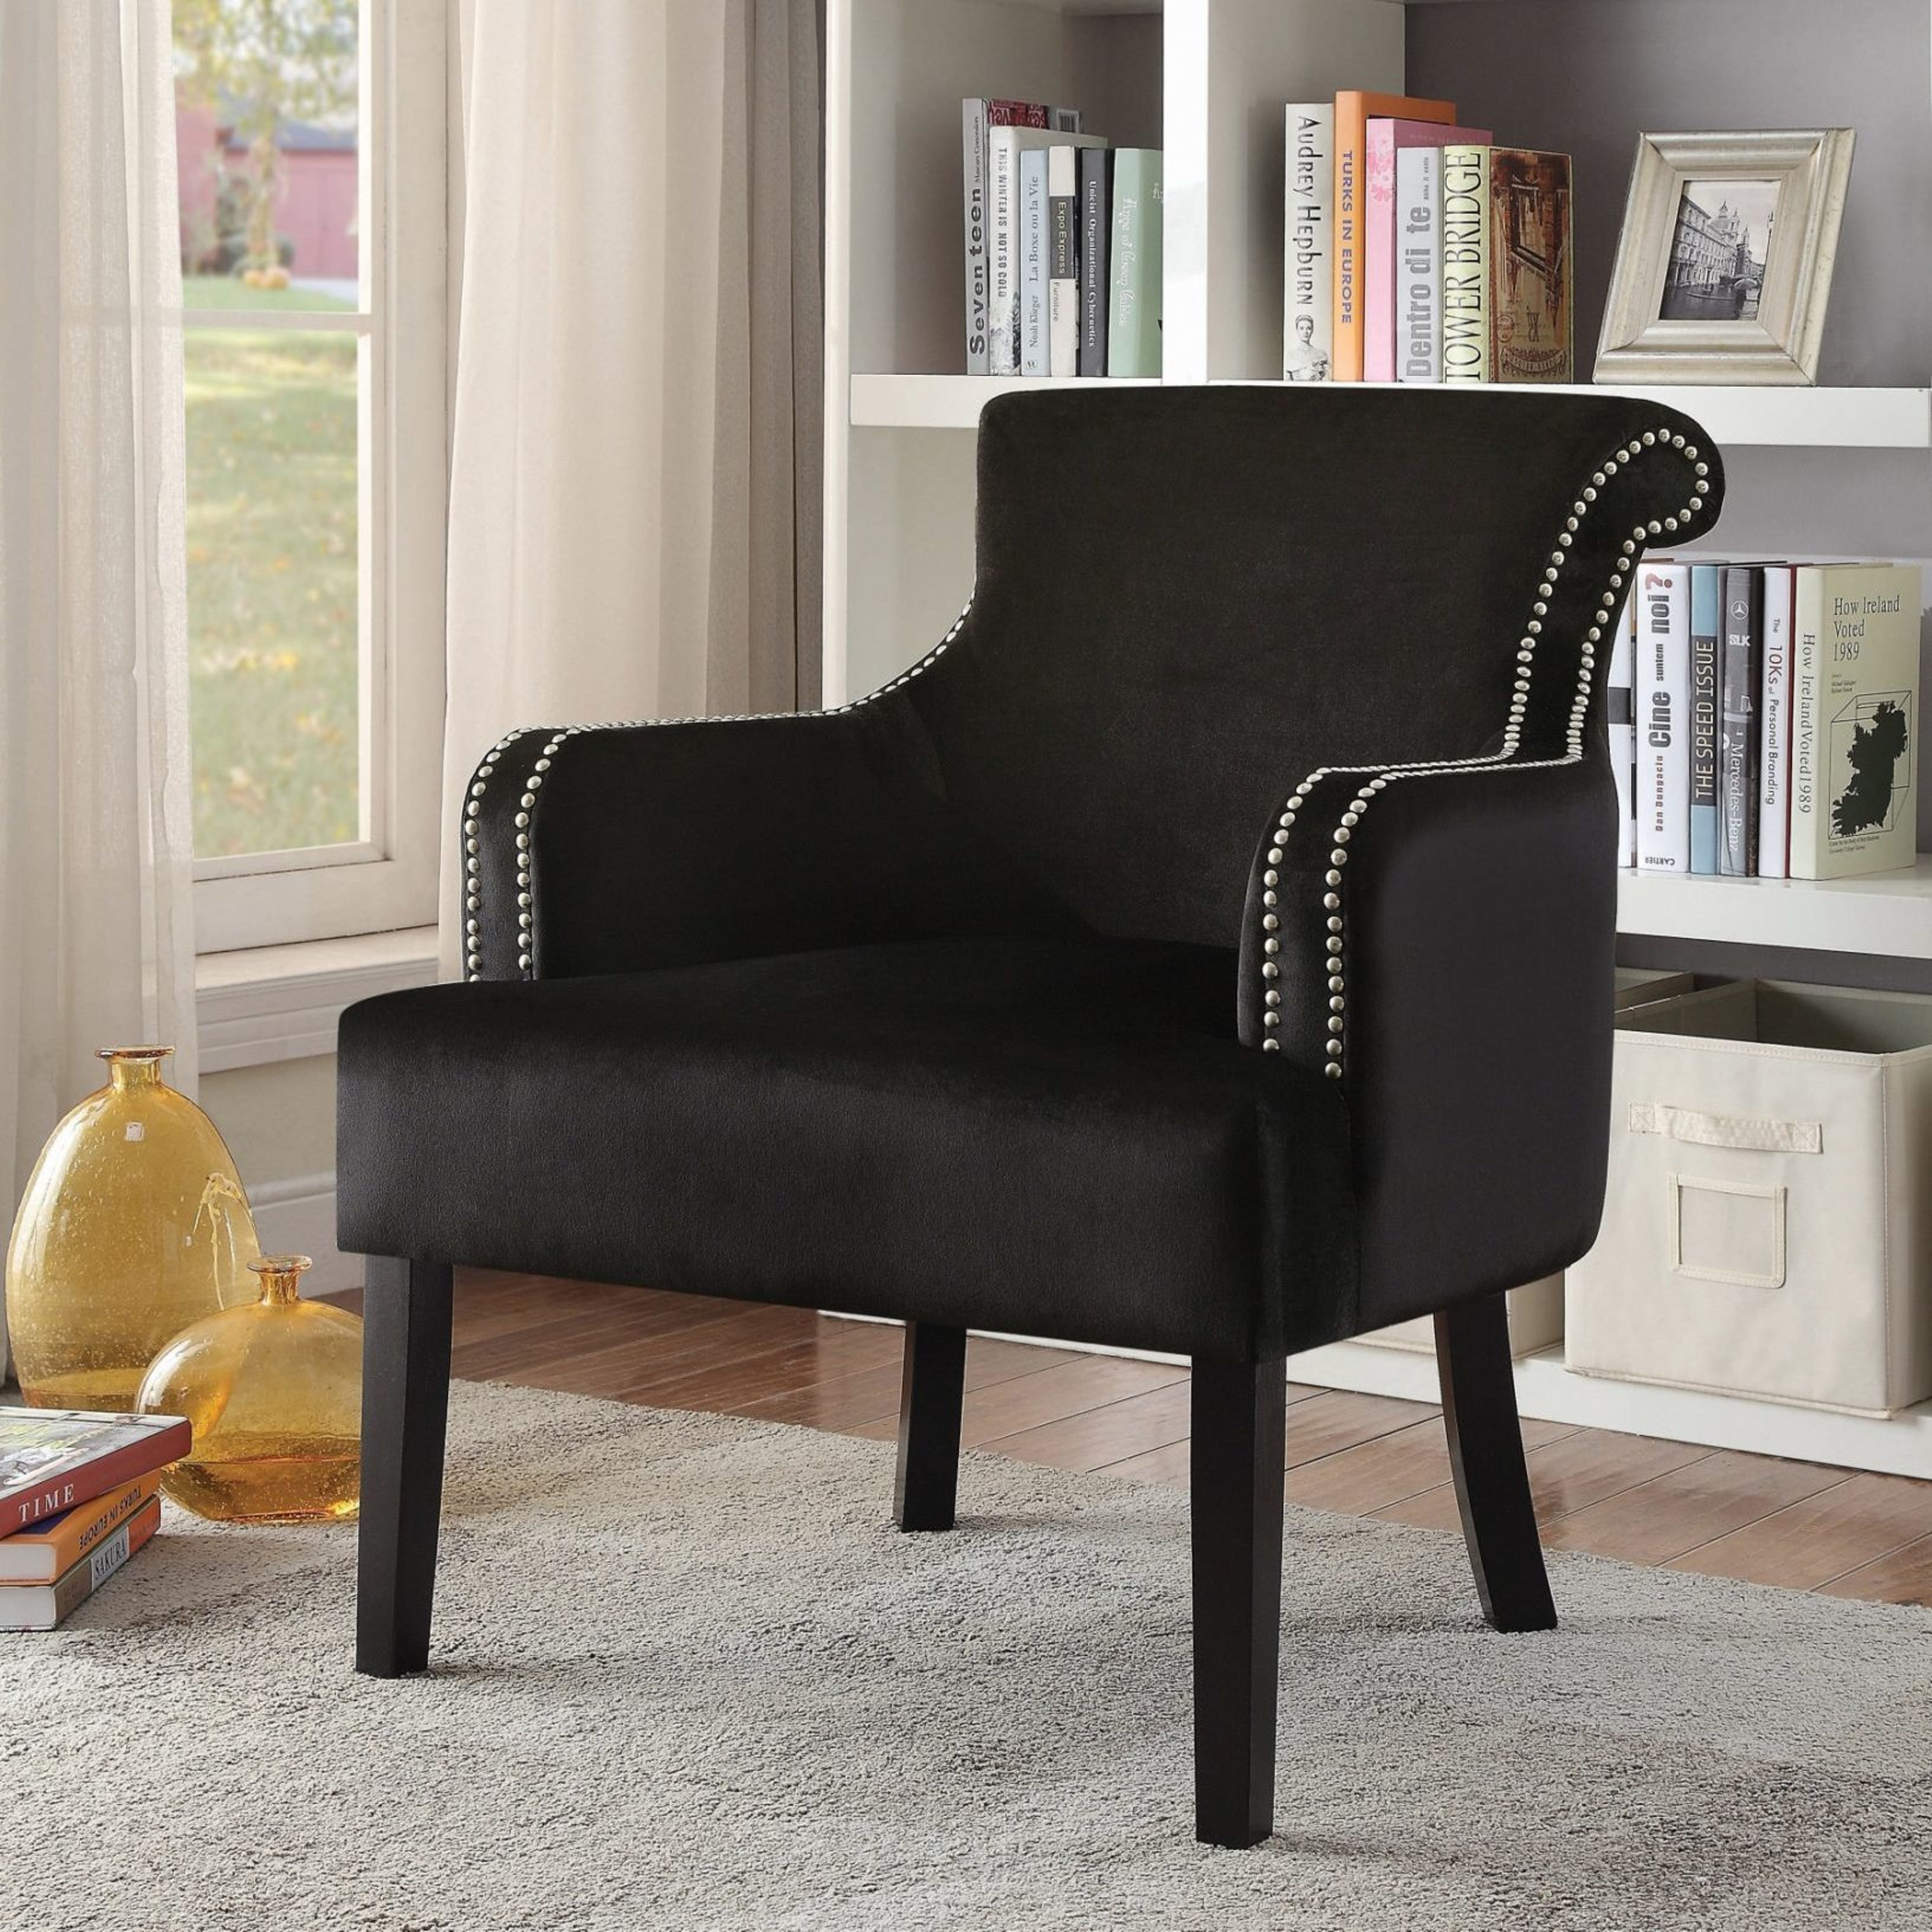 Shop Living Room Black Velvet Accent Chair With Nailhead Trim Free